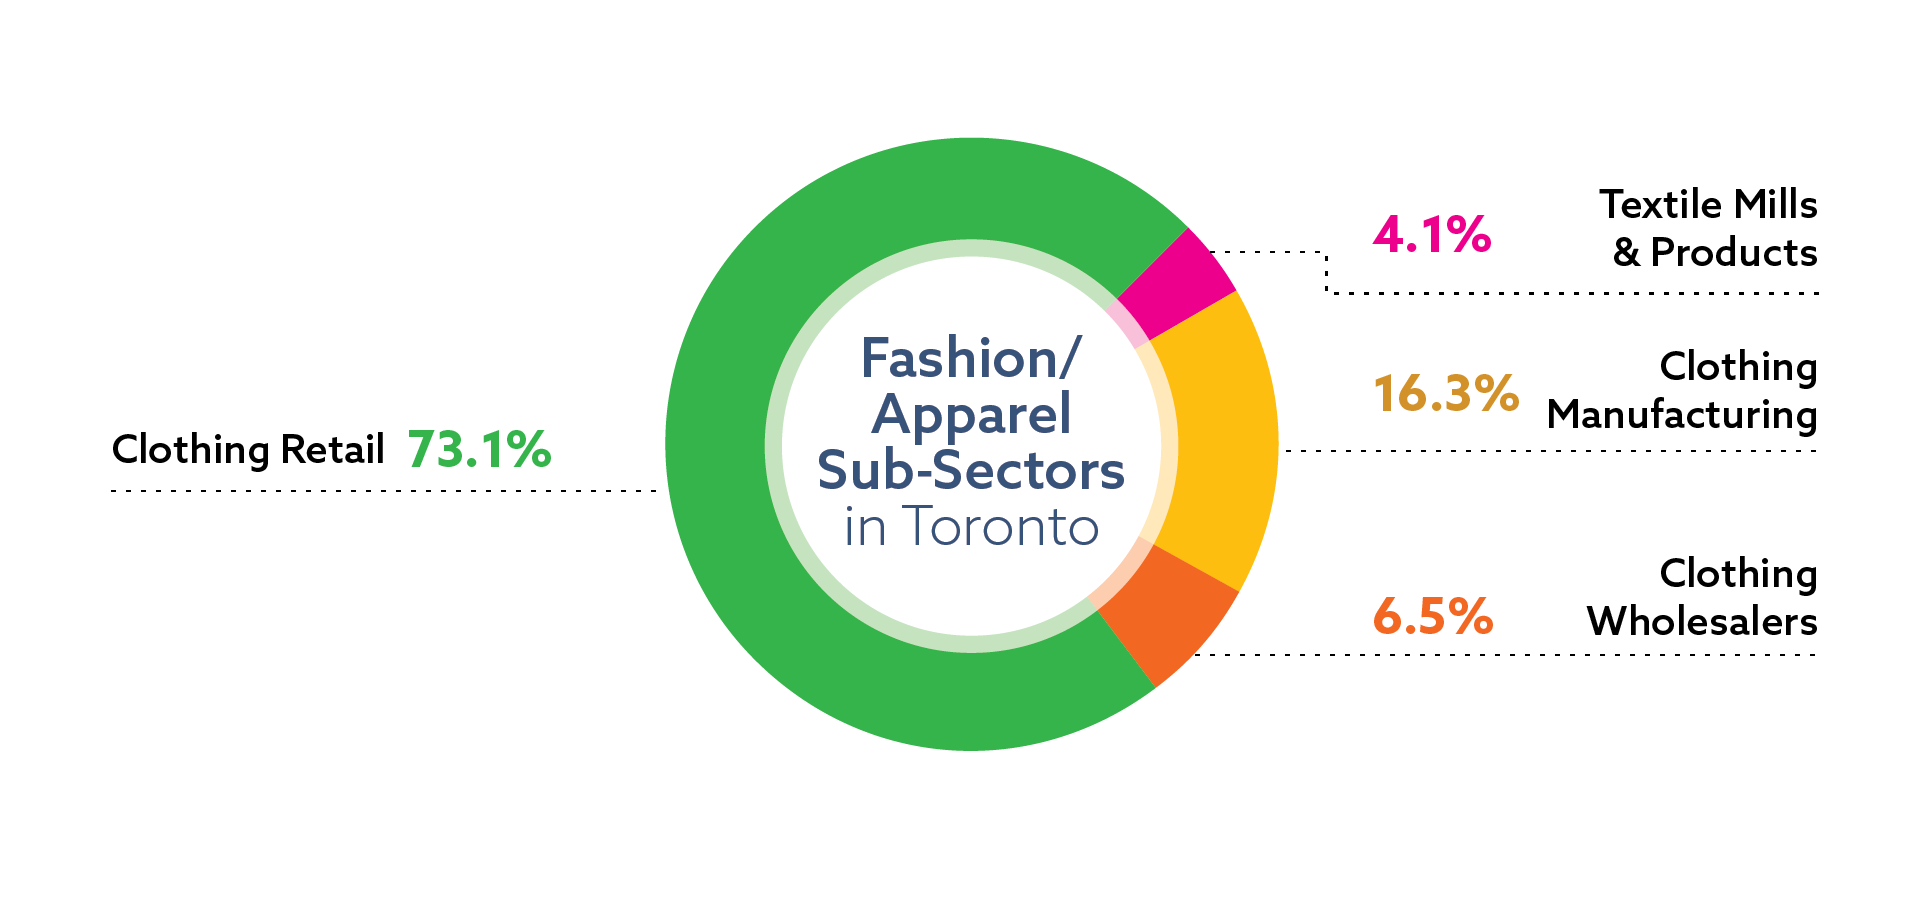 Distribution of jobs in the fashion and apparel sector in Toronto, by sub-sector: clothing retail 73.1 percent of sector jobs; clothing manufacturing 16.3 percent of sector jobs; clothing wholesalers 6.5 percent of sector jobs; textile mills and products 4.1 percent of sector jobs